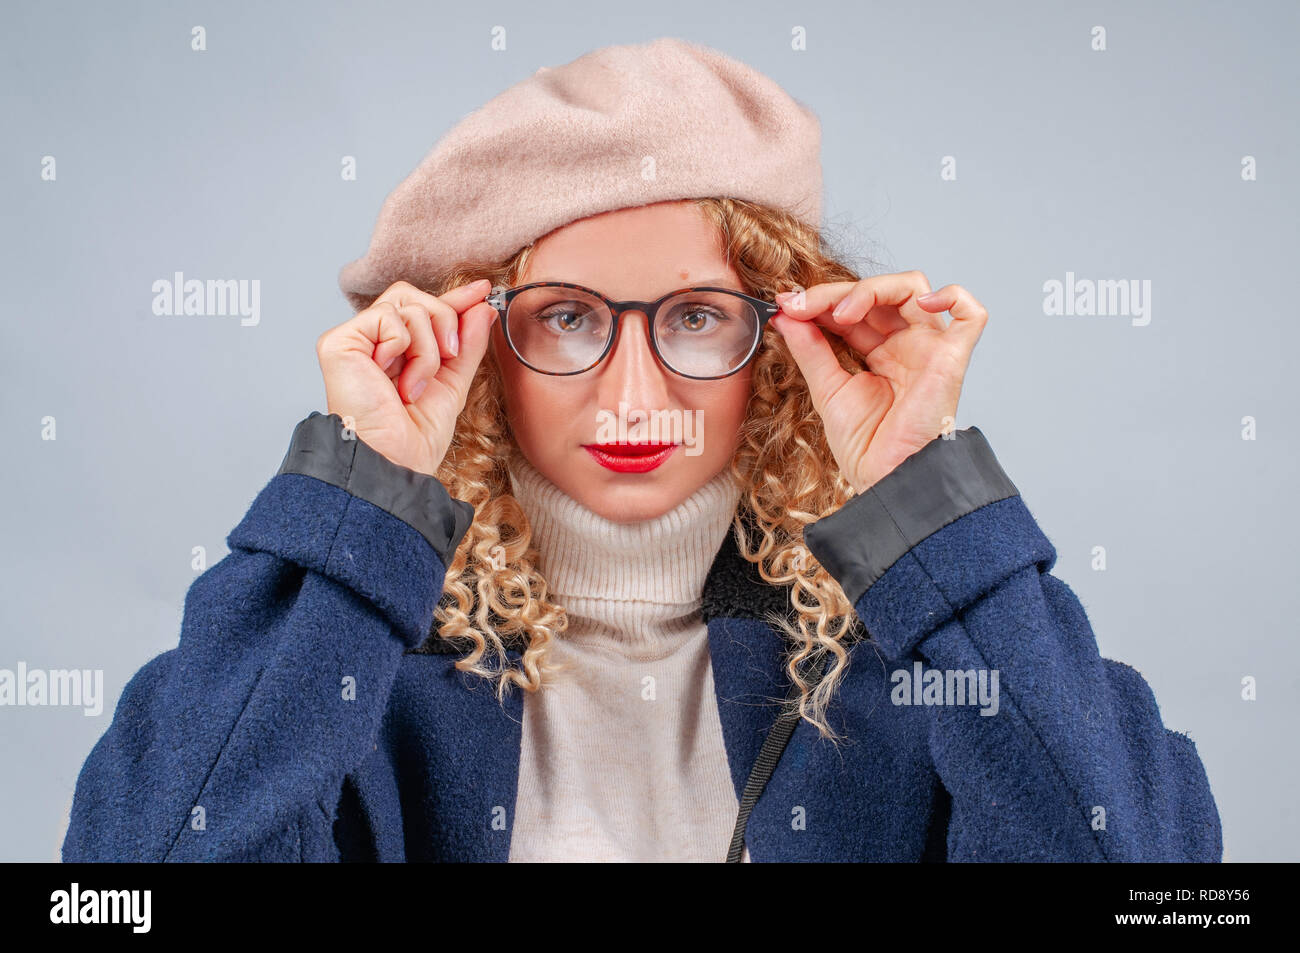 776124ff8ea9c Happy student woman in eyeglasses and beret is smiling and looking at  camera - Stock Image